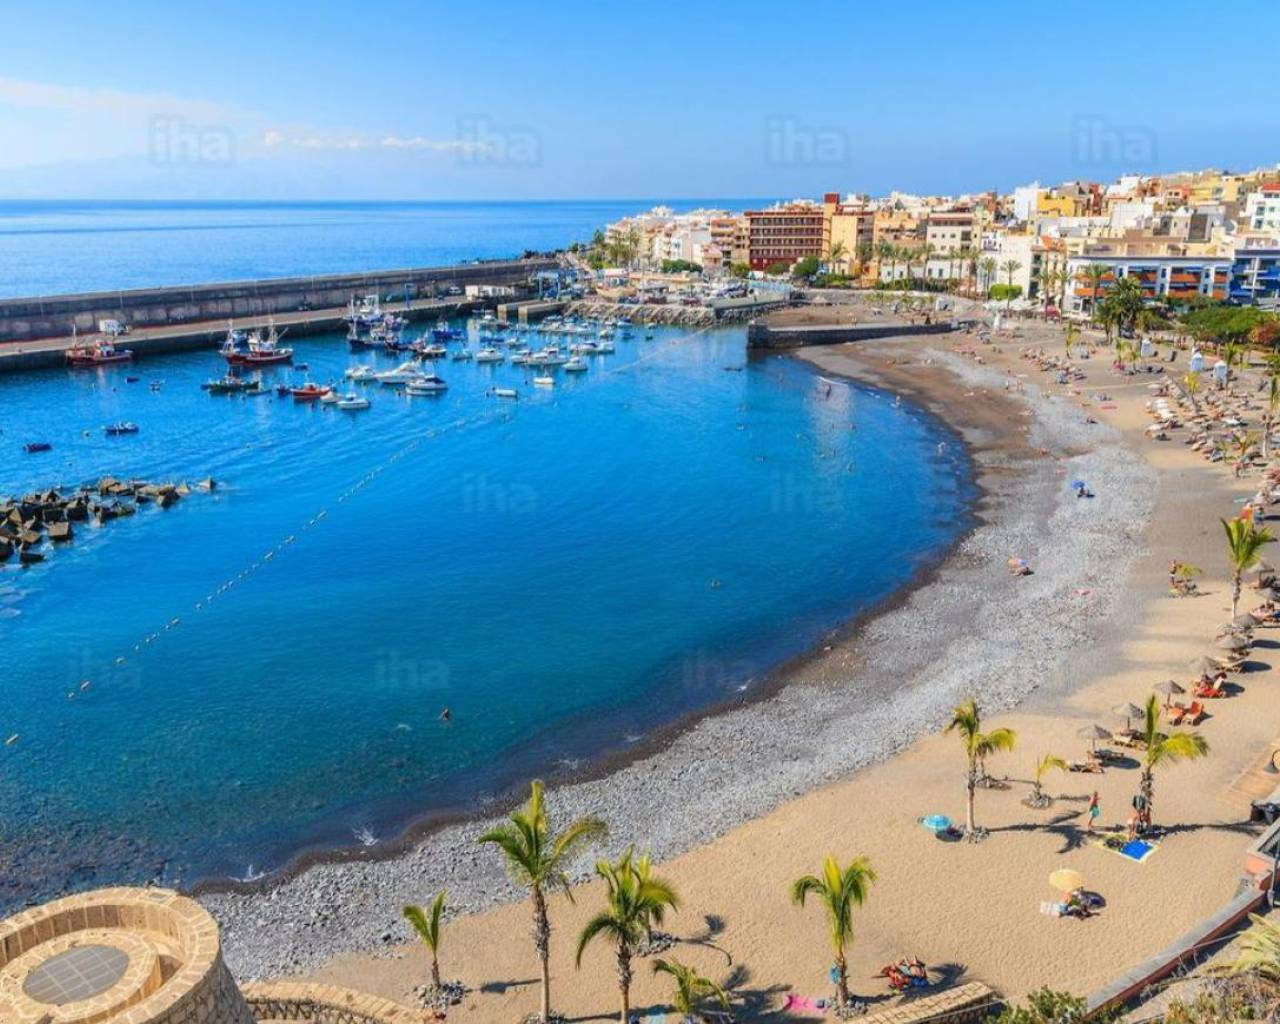 Apartment - Sale - Tenerife - Playa San Juan